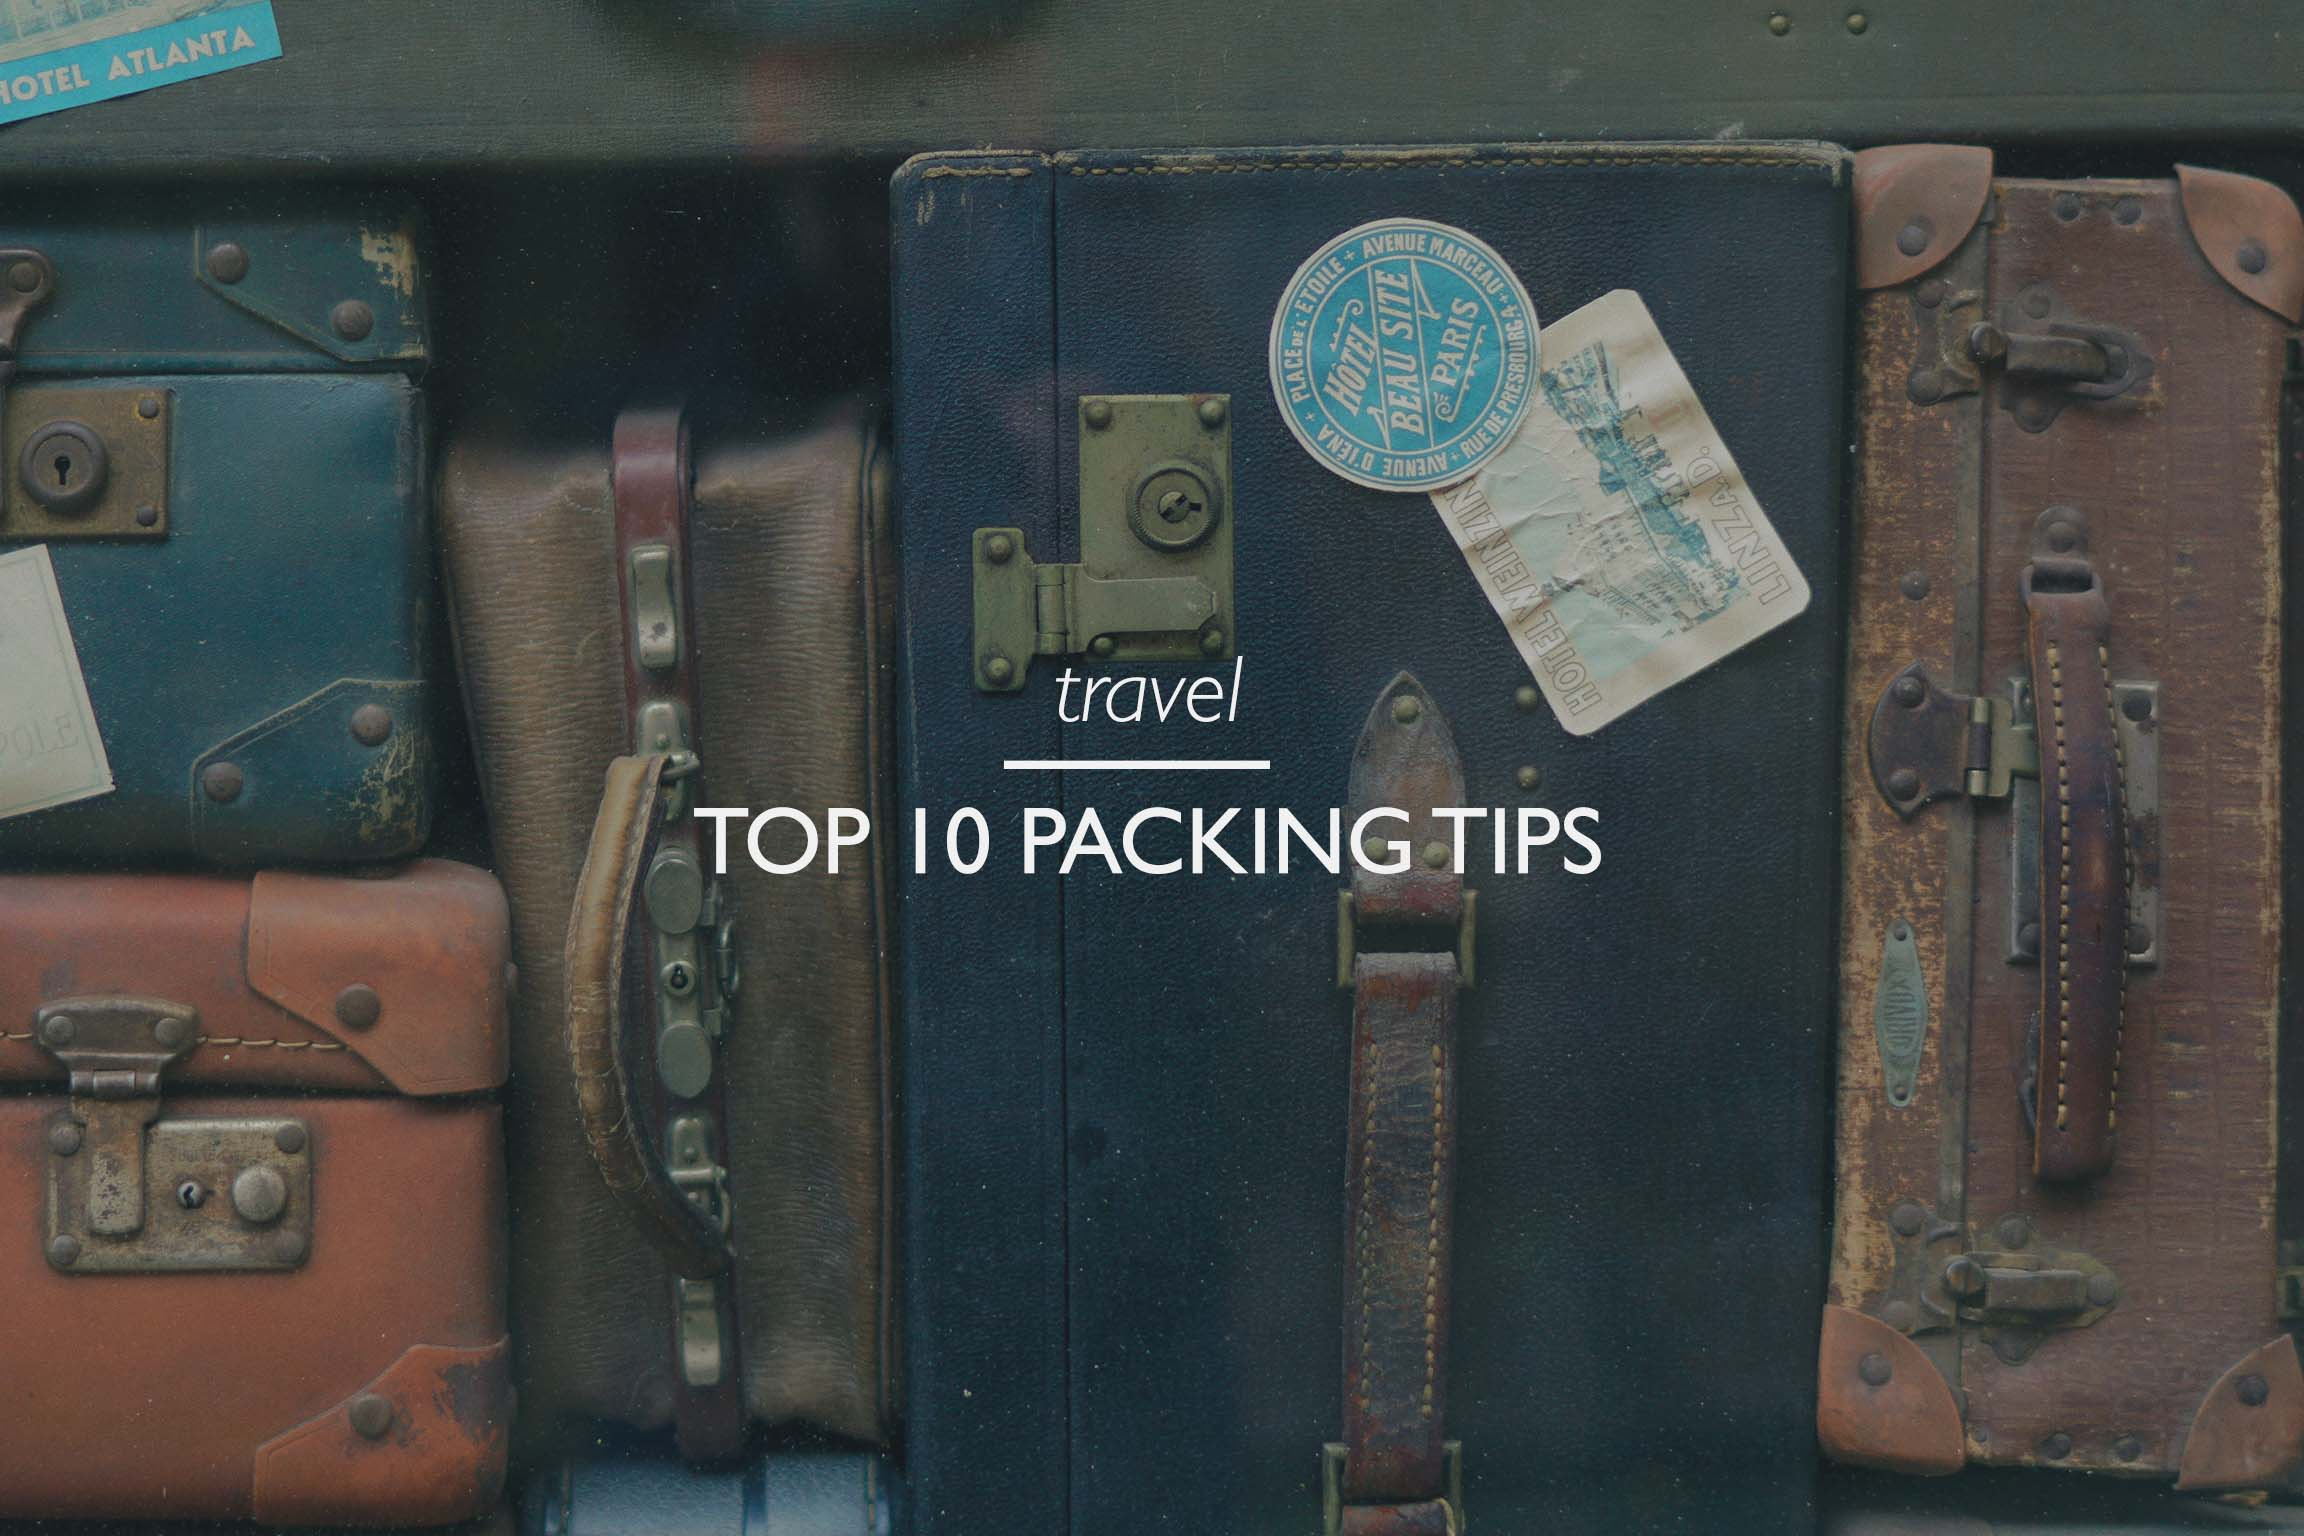 Copy of Copy of Copy of Copy of Copy of Copy of Copy of Top 10 Packing Tips